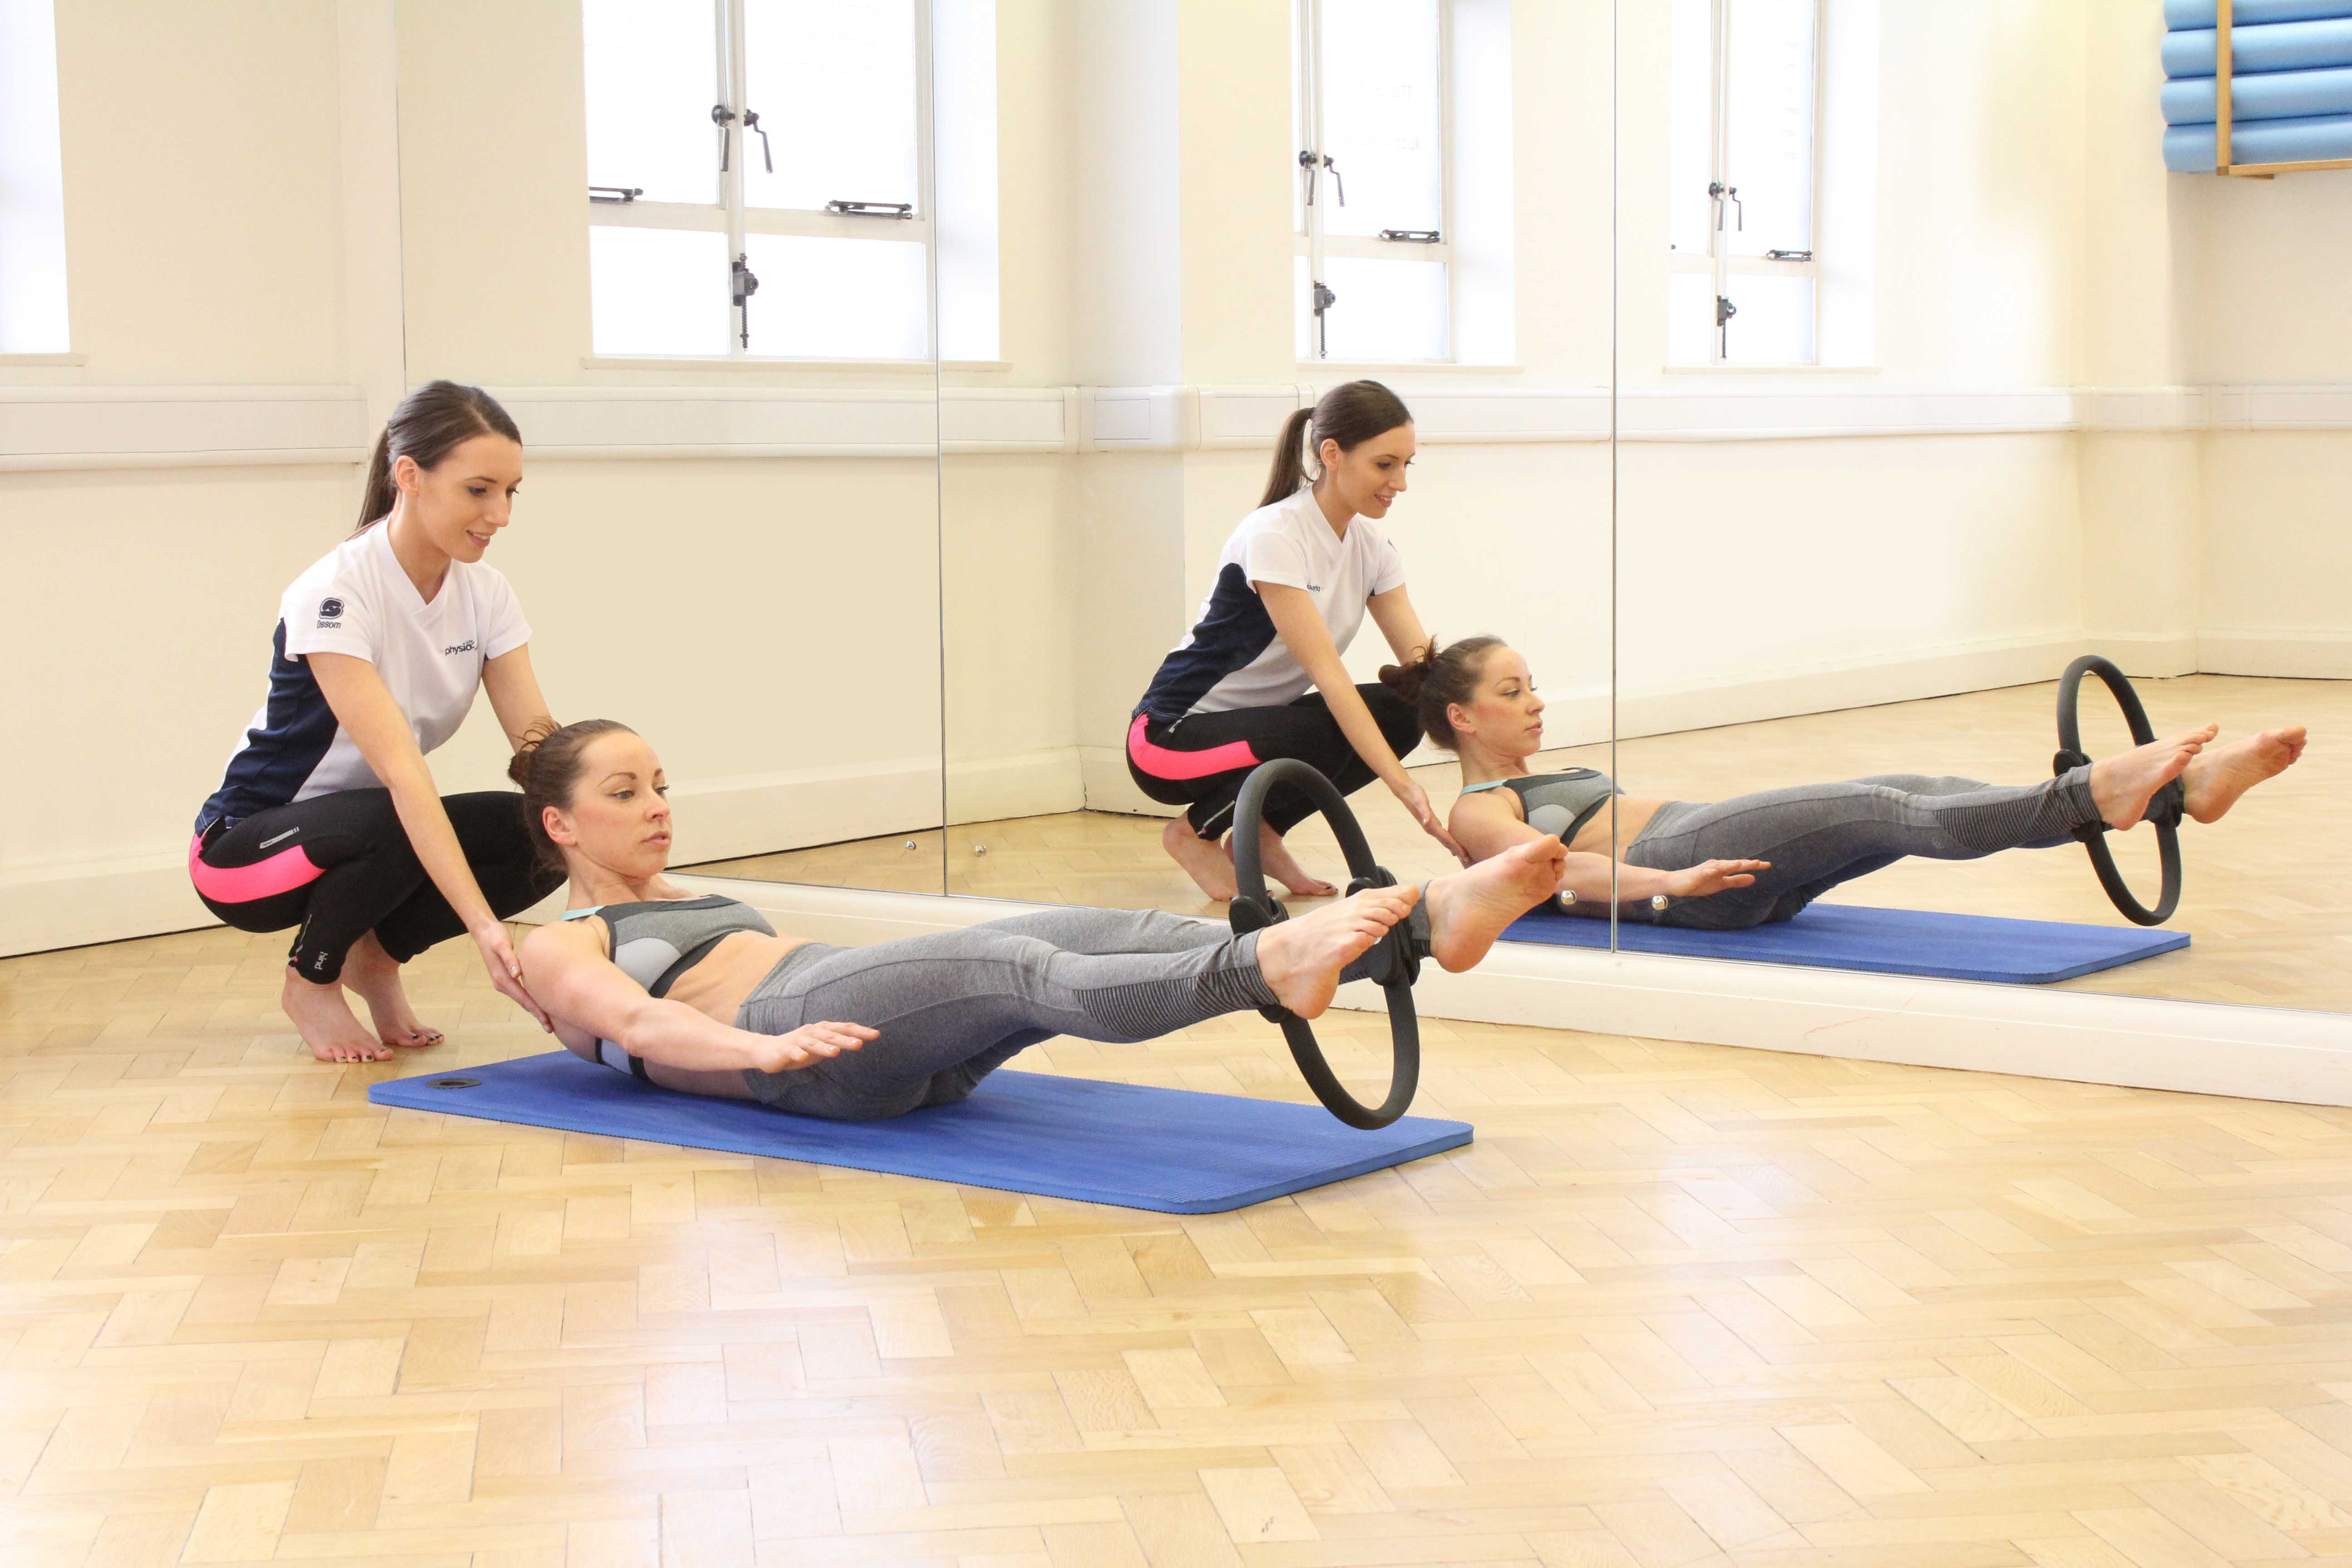 One to One Pilates session with specialist physiotherapist using ring